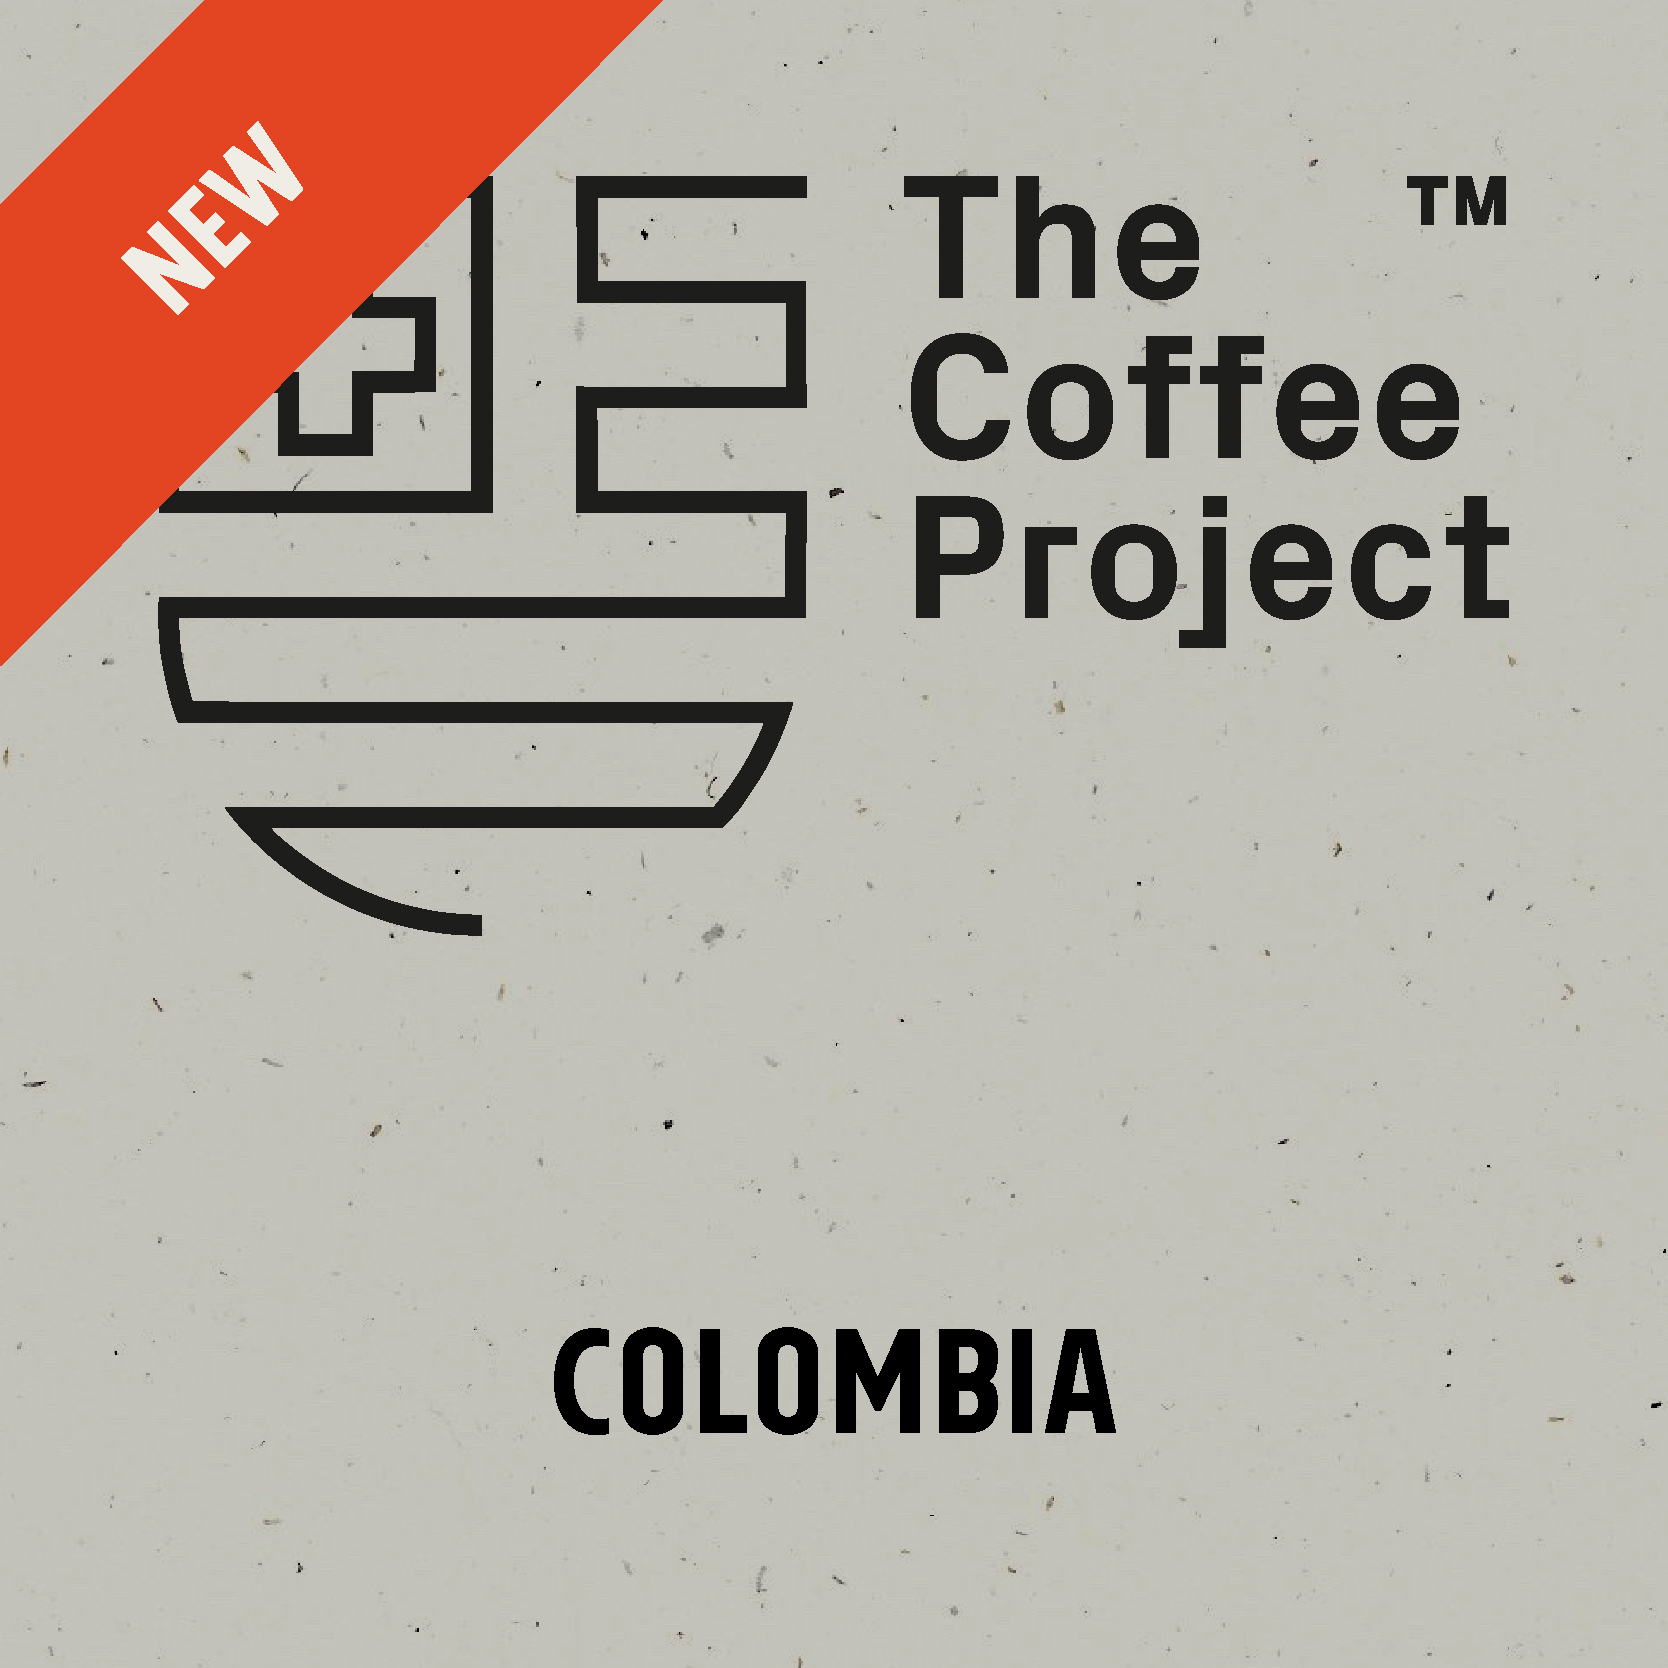 New Coffee Project